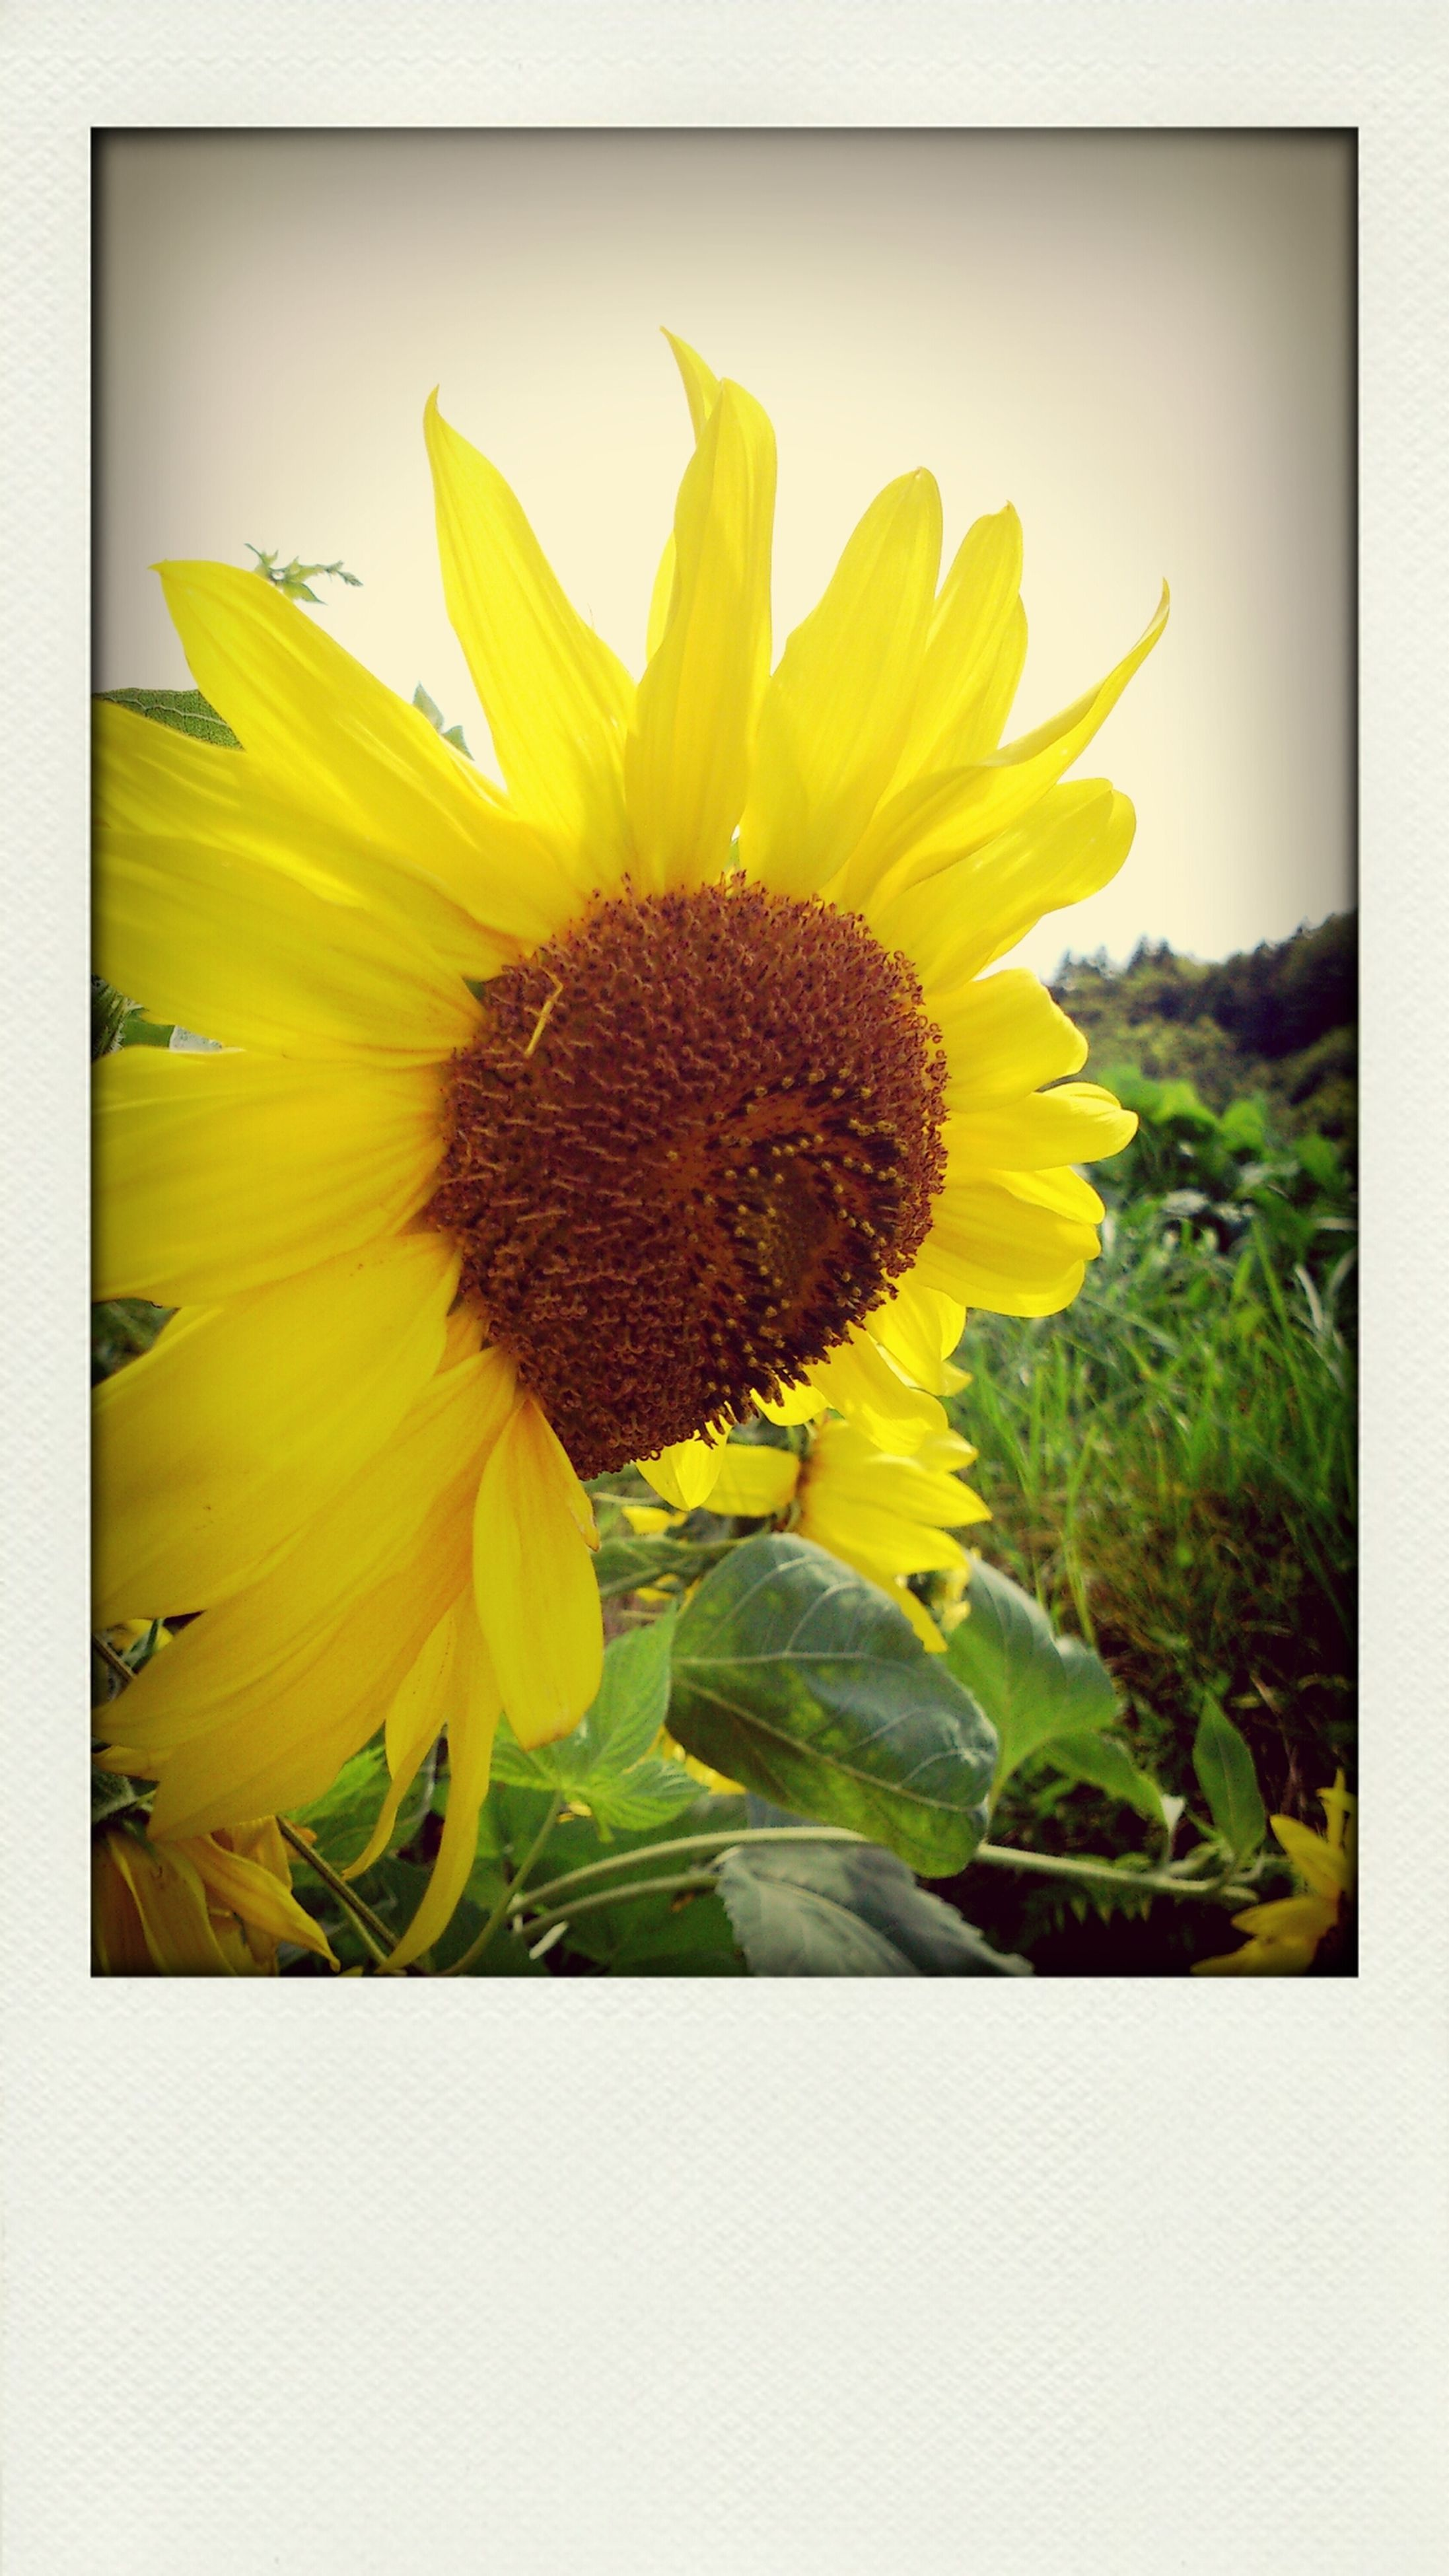 flower, yellow, transfer print, flower head, freshness, petal, fragility, sunflower, growth, beauty in nature, auto post production filter, pollen, nature, blooming, close-up, single flower, plant, in bloom, stem, no people